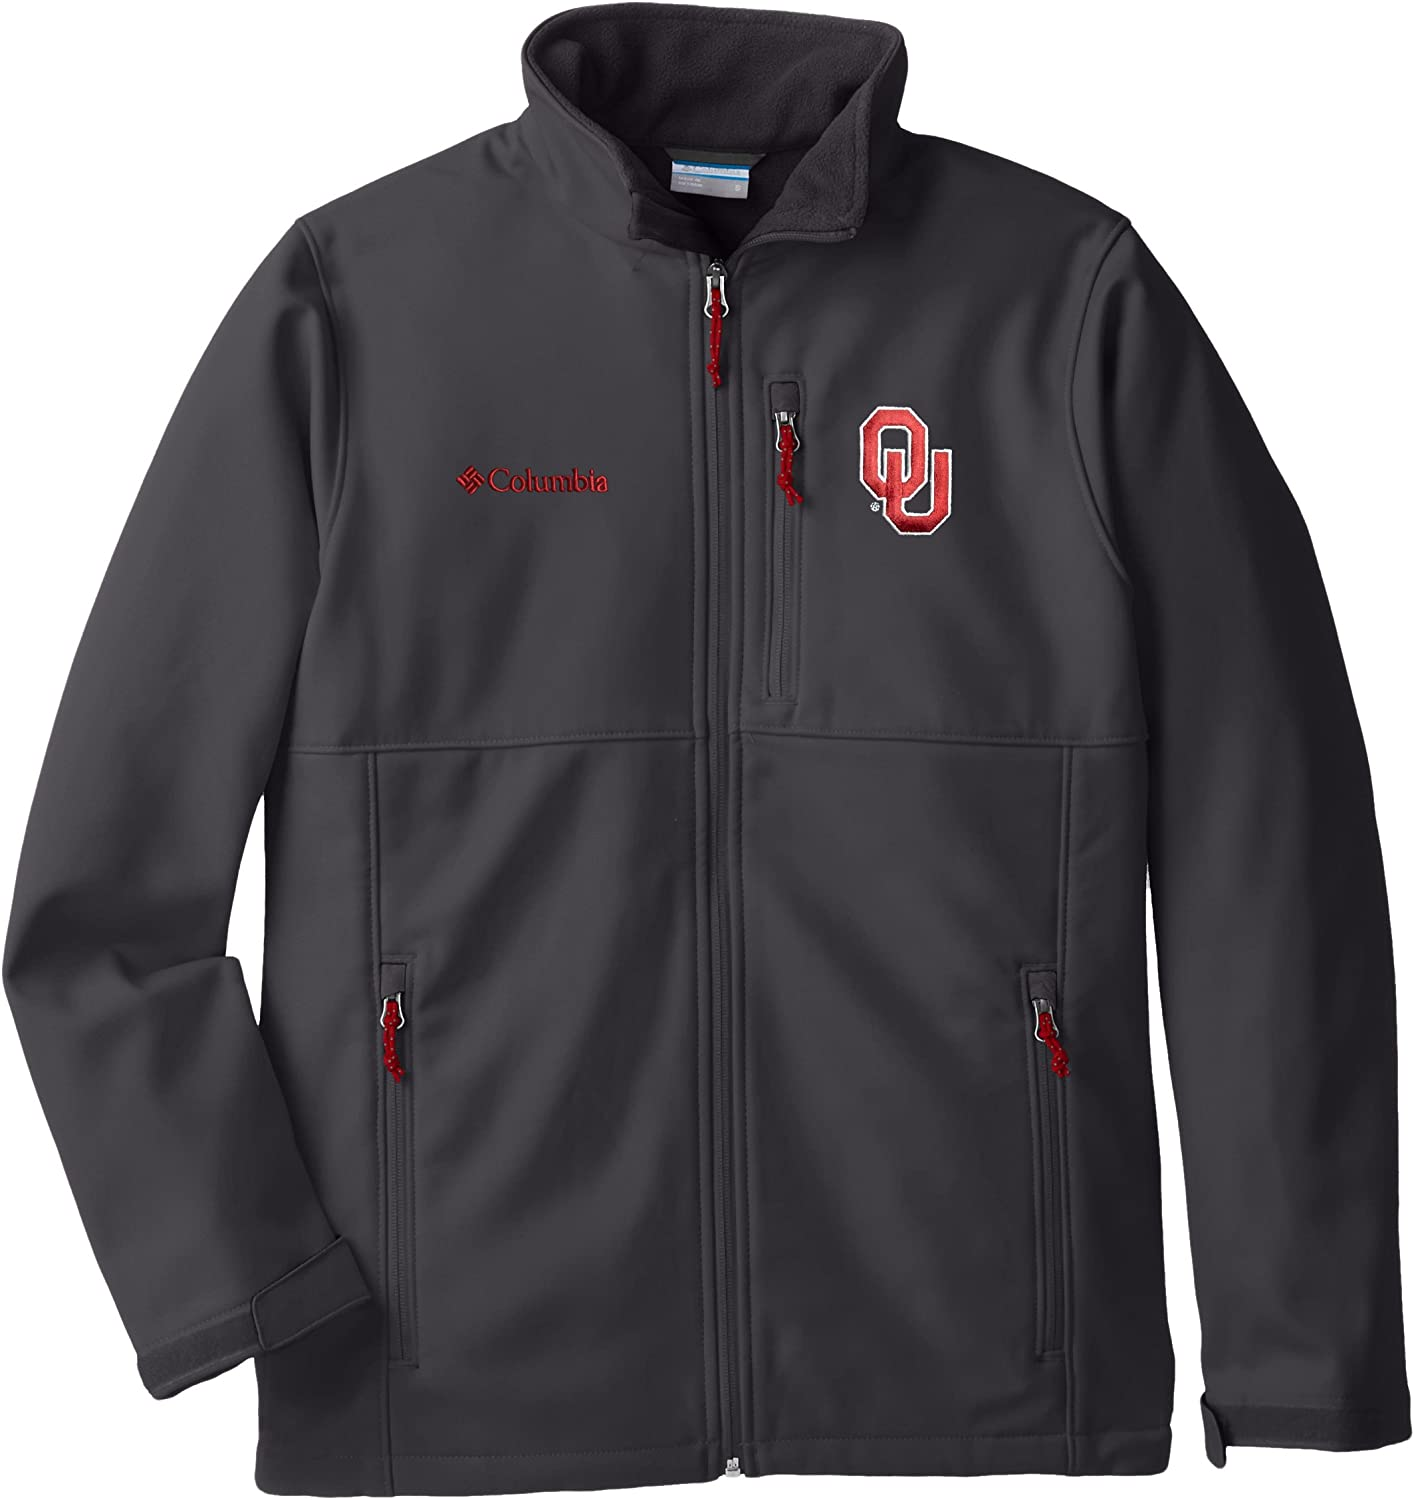 NCAA Oklahoma Sooners Collegiate Ascender Softshell Jacket